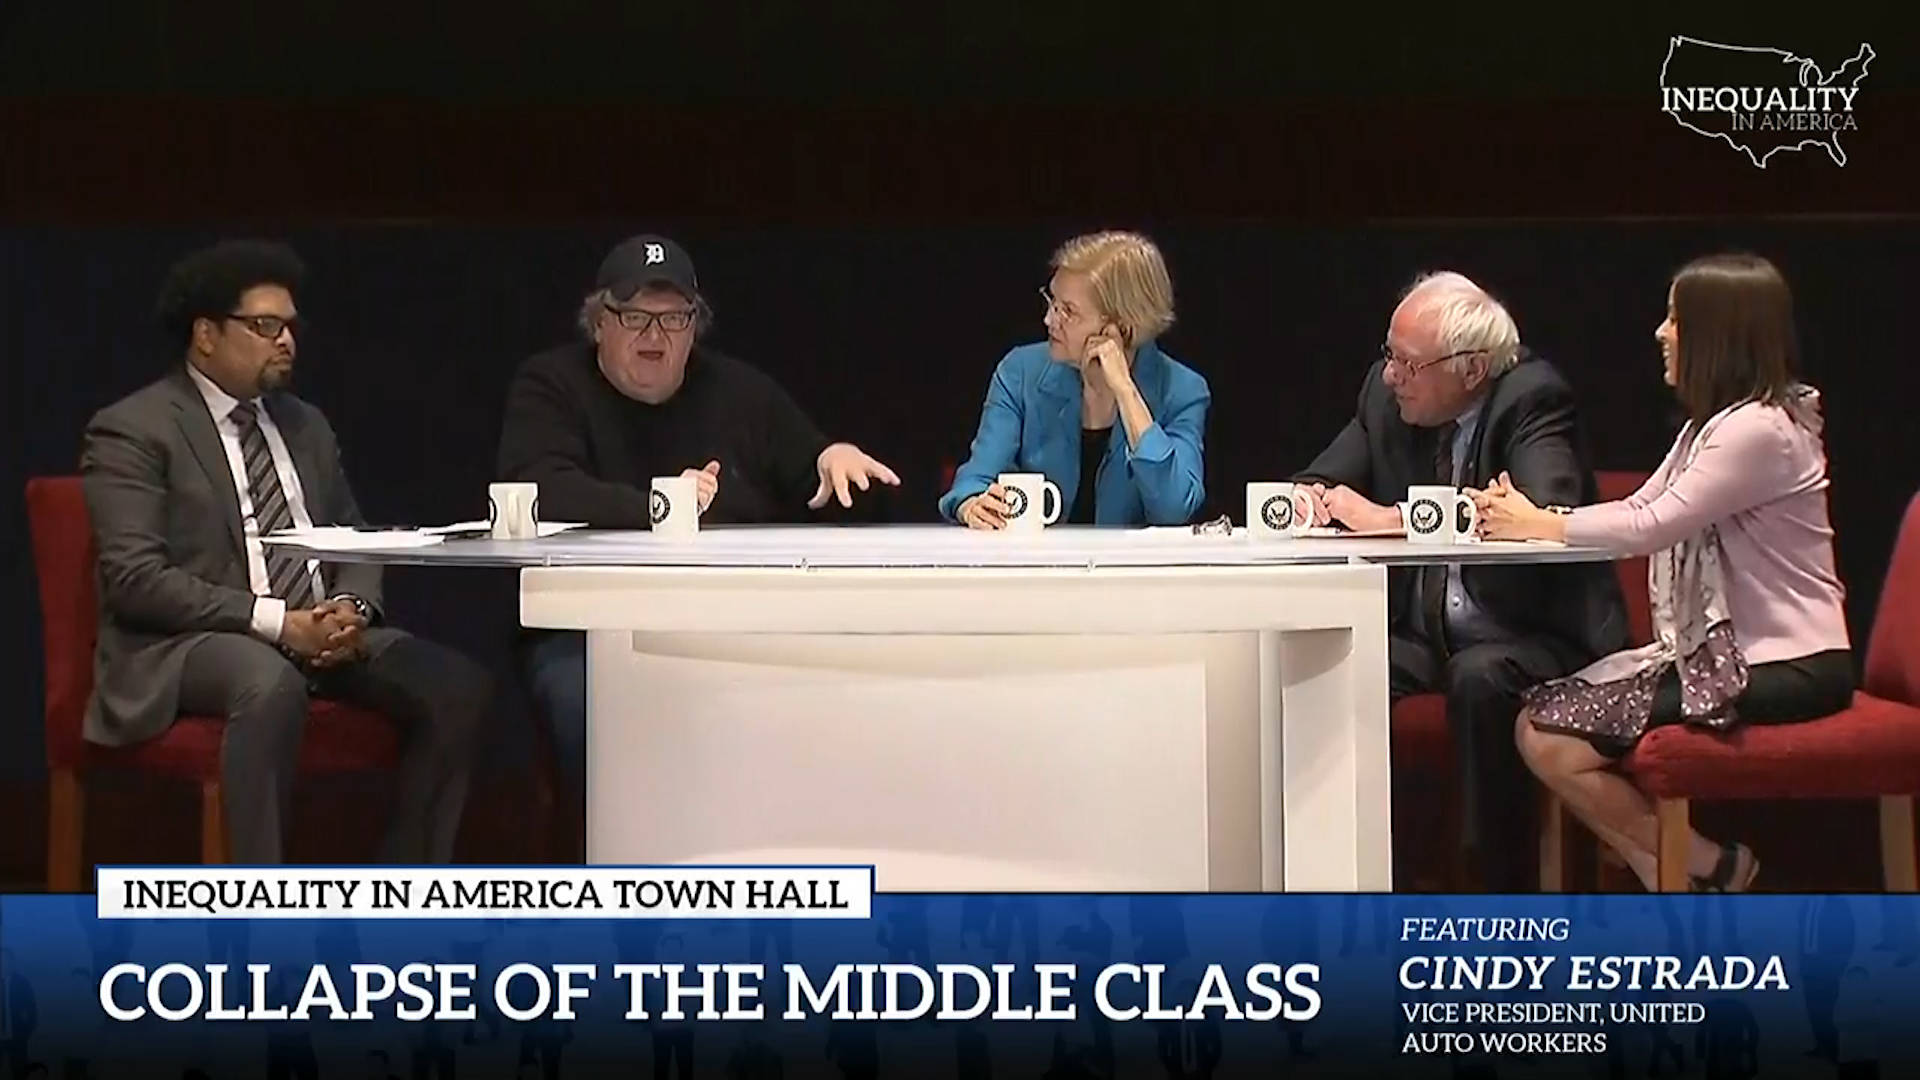 Bernie Sanders & Elizabeth Warren Host Live-Streamed Town Hall on Inequality